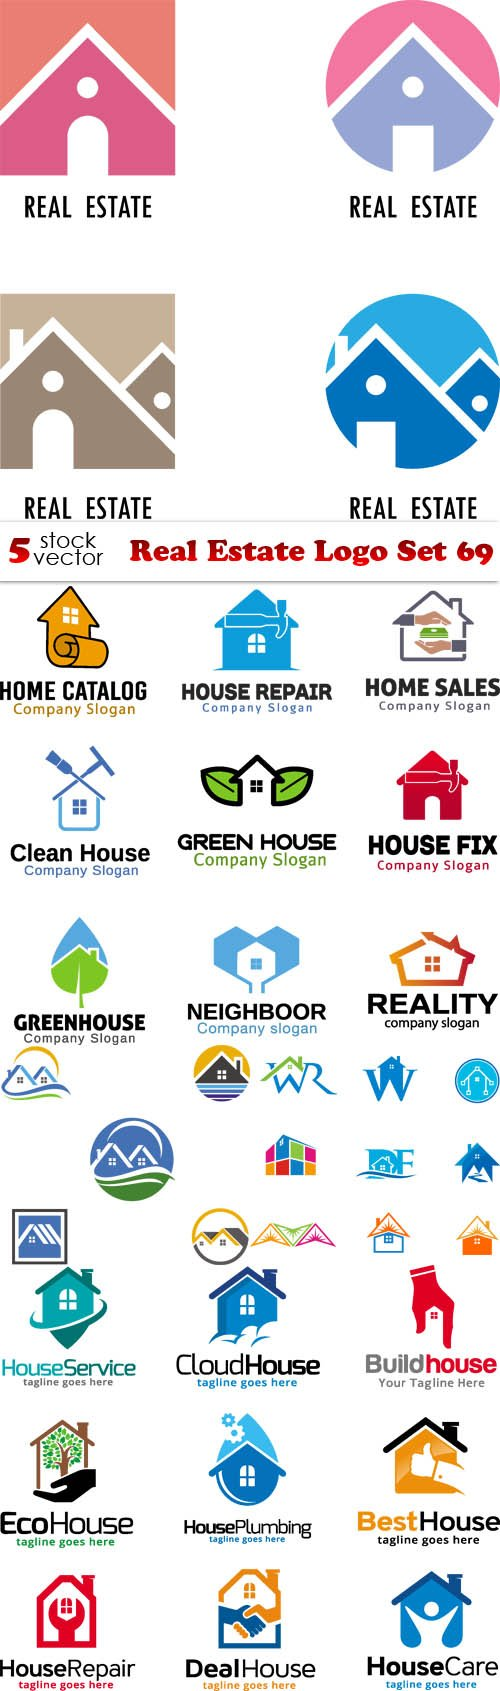 Vectors - Real Estate Logo Set 69